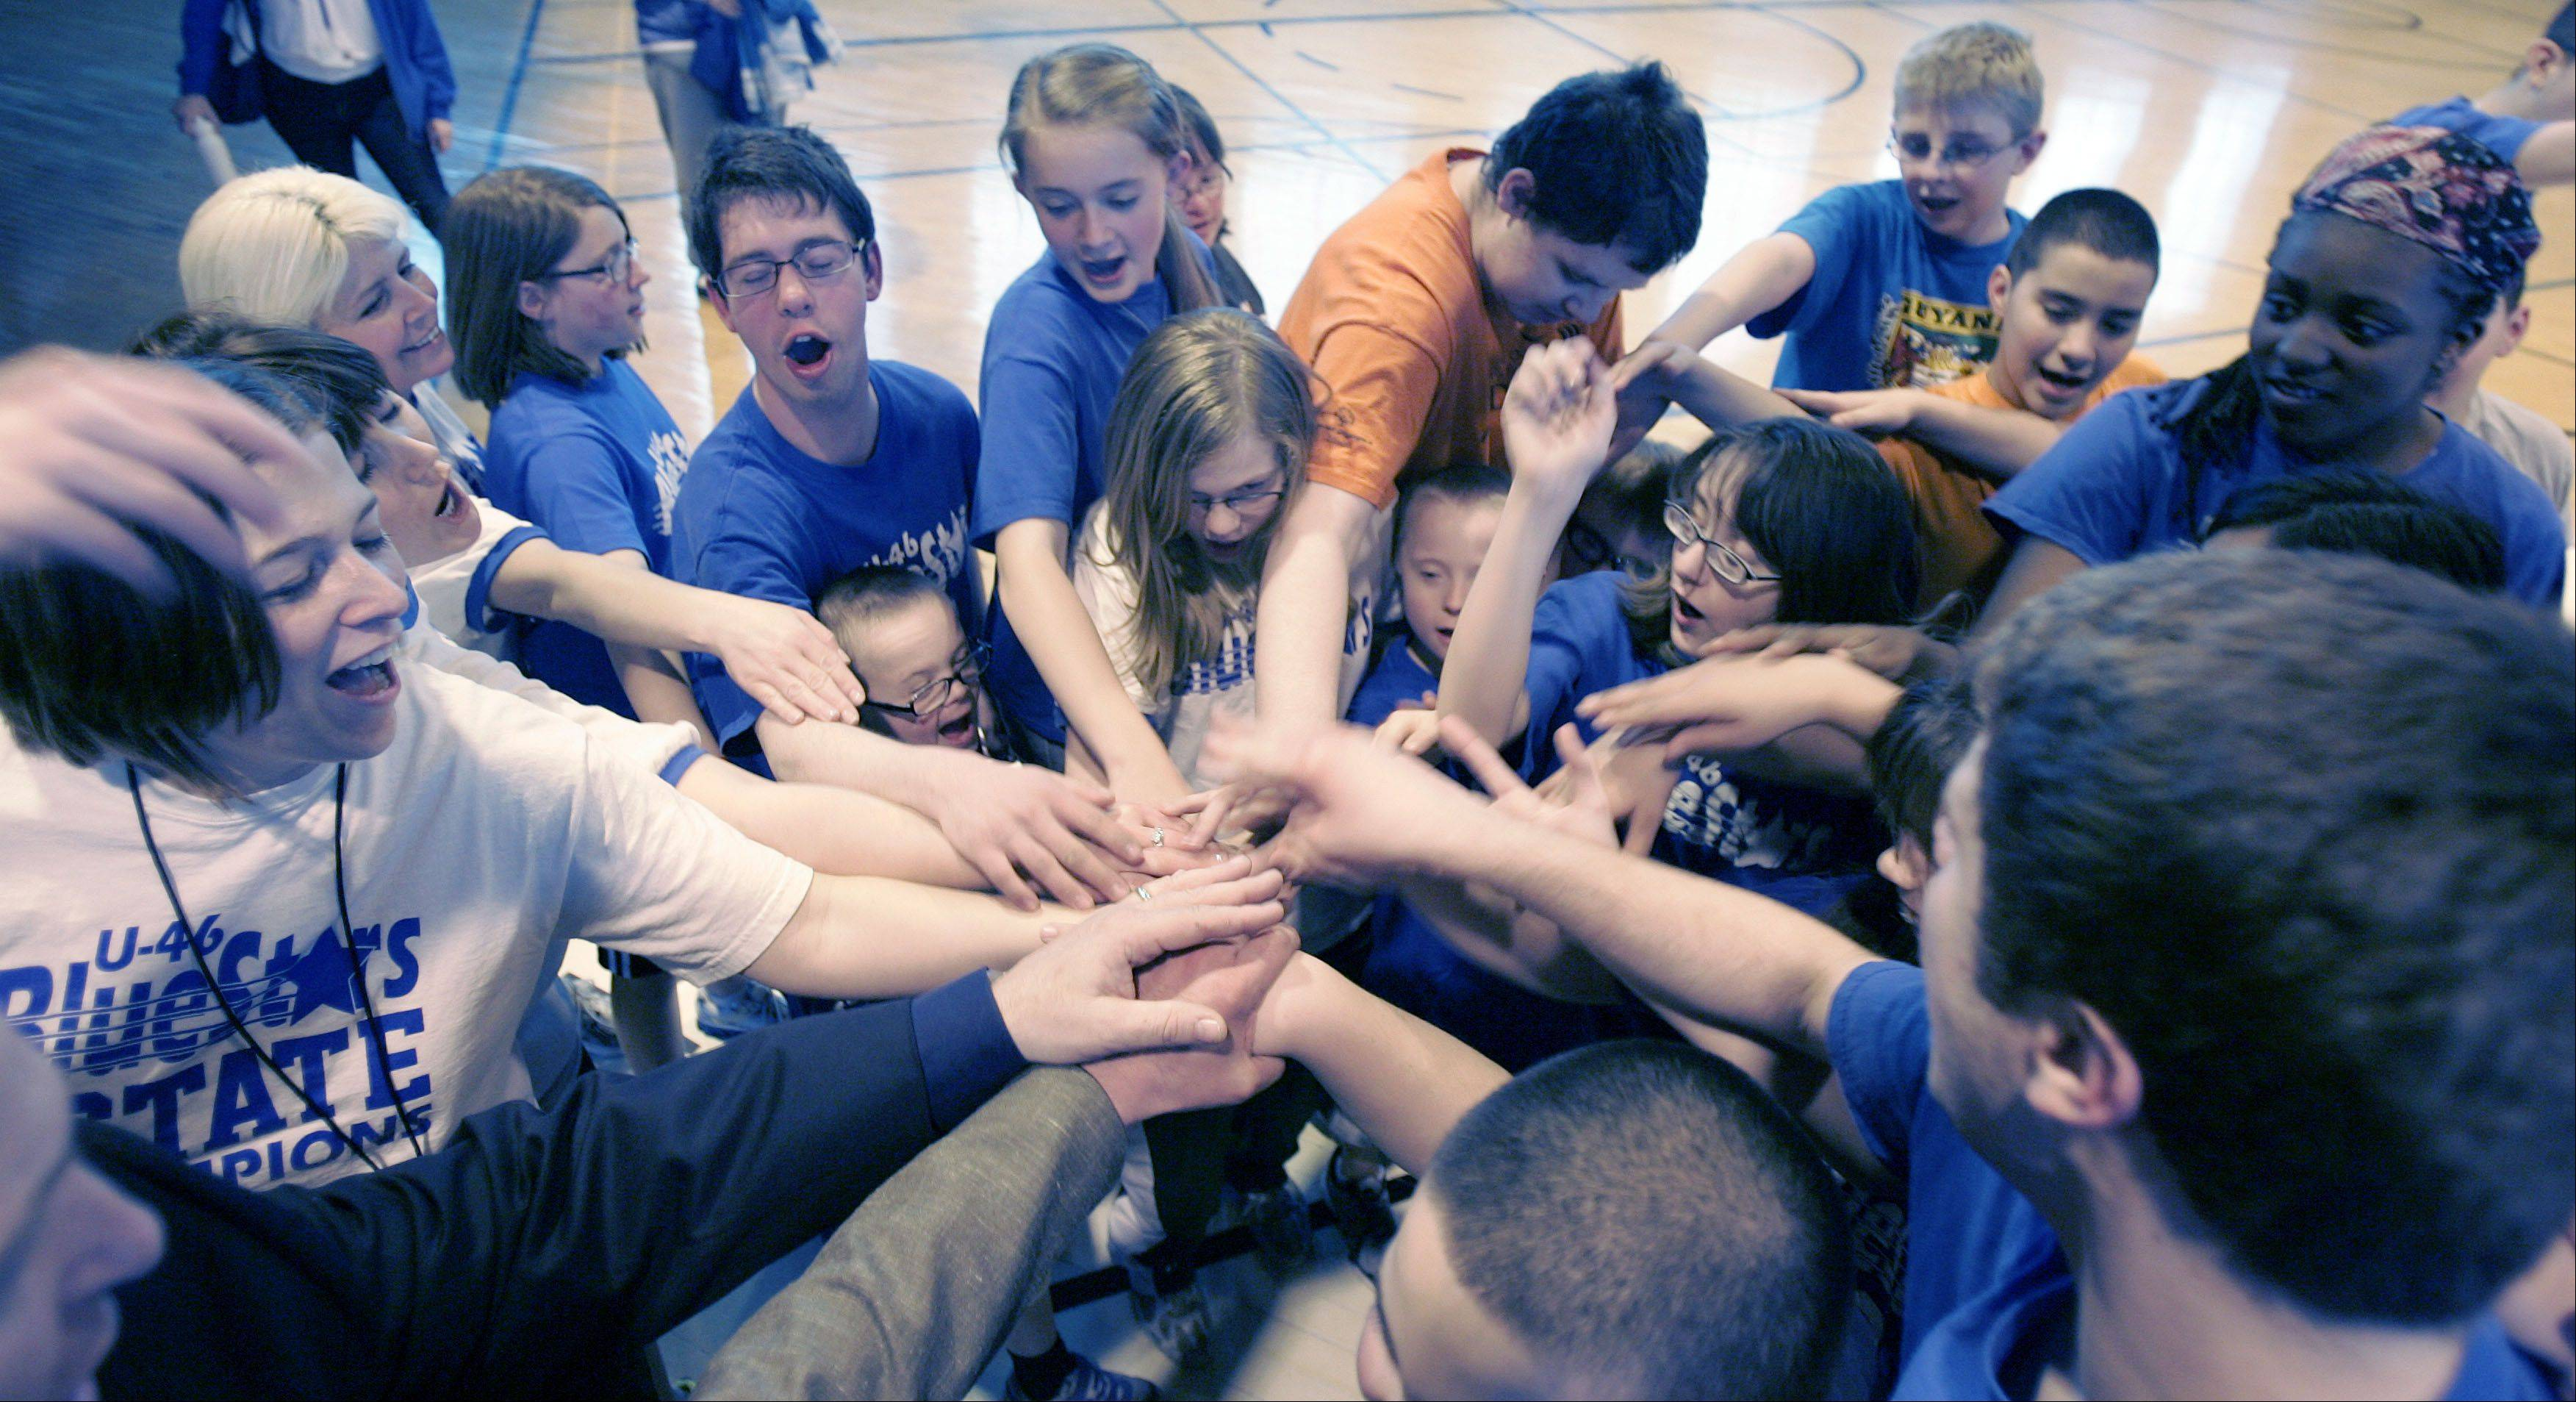 BlueStars defeat all those things wrong with youth sports